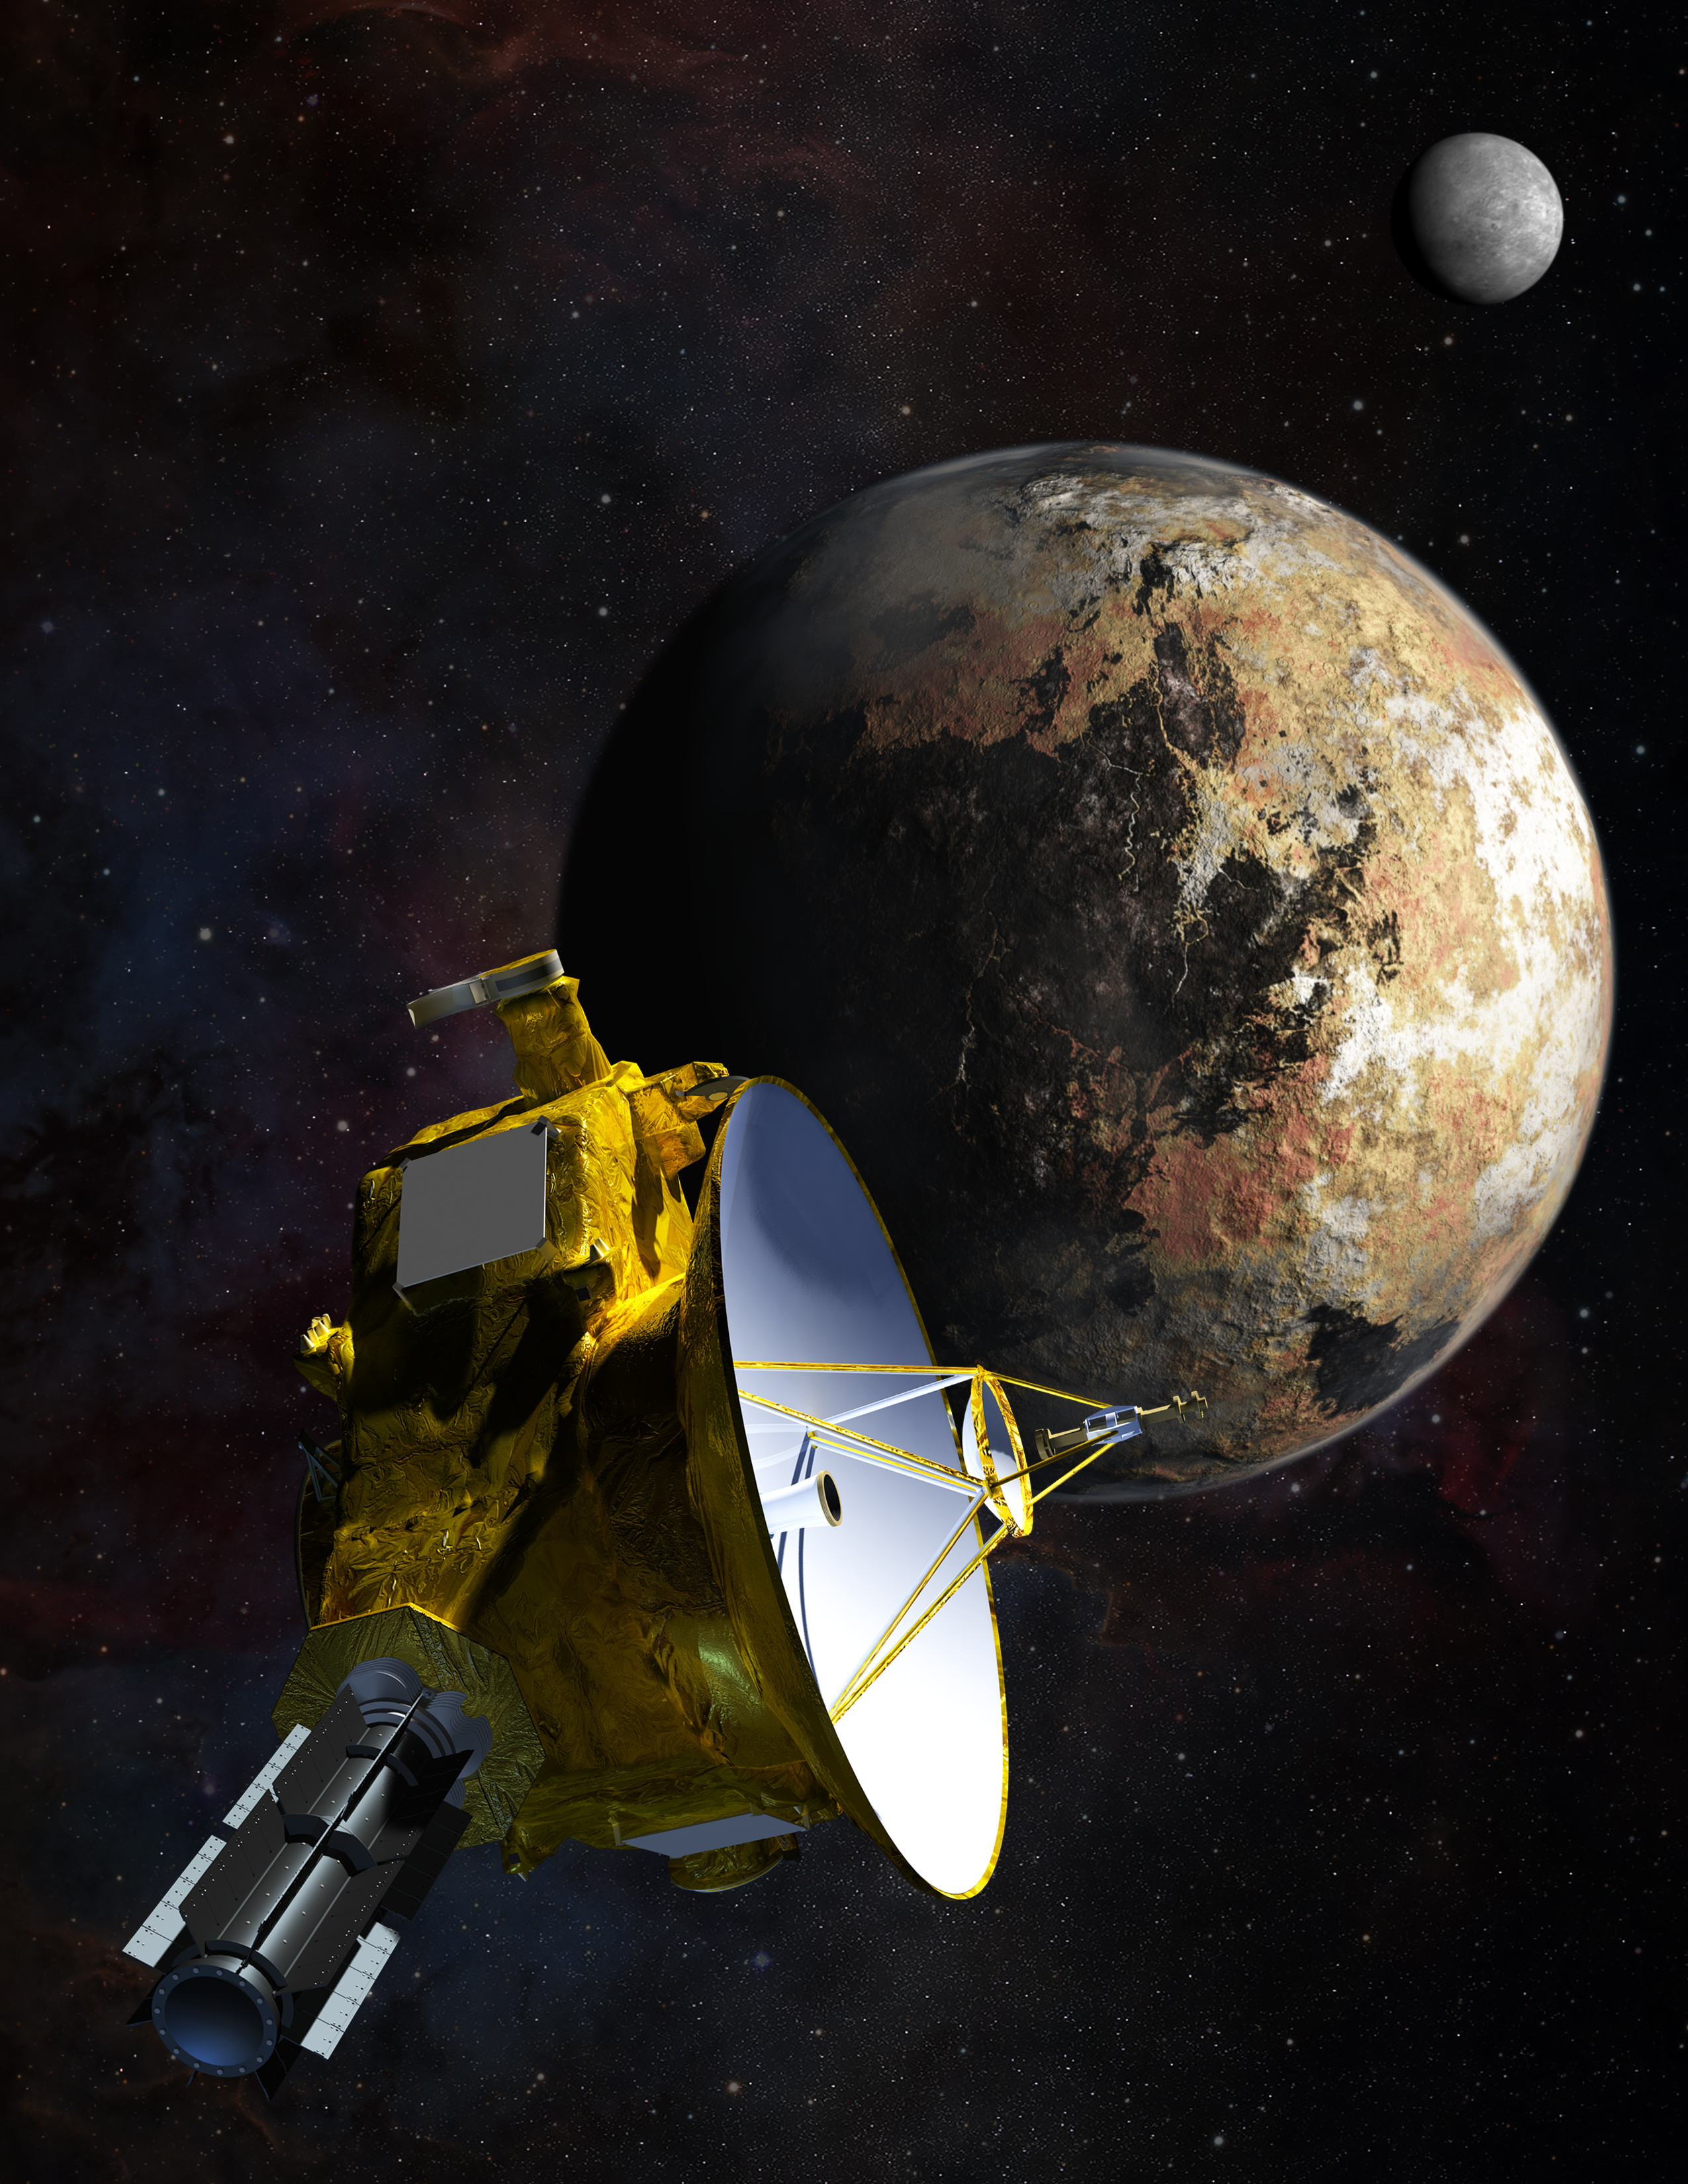 New Horizons' Pluto Flyby: Latest News, Images and Video